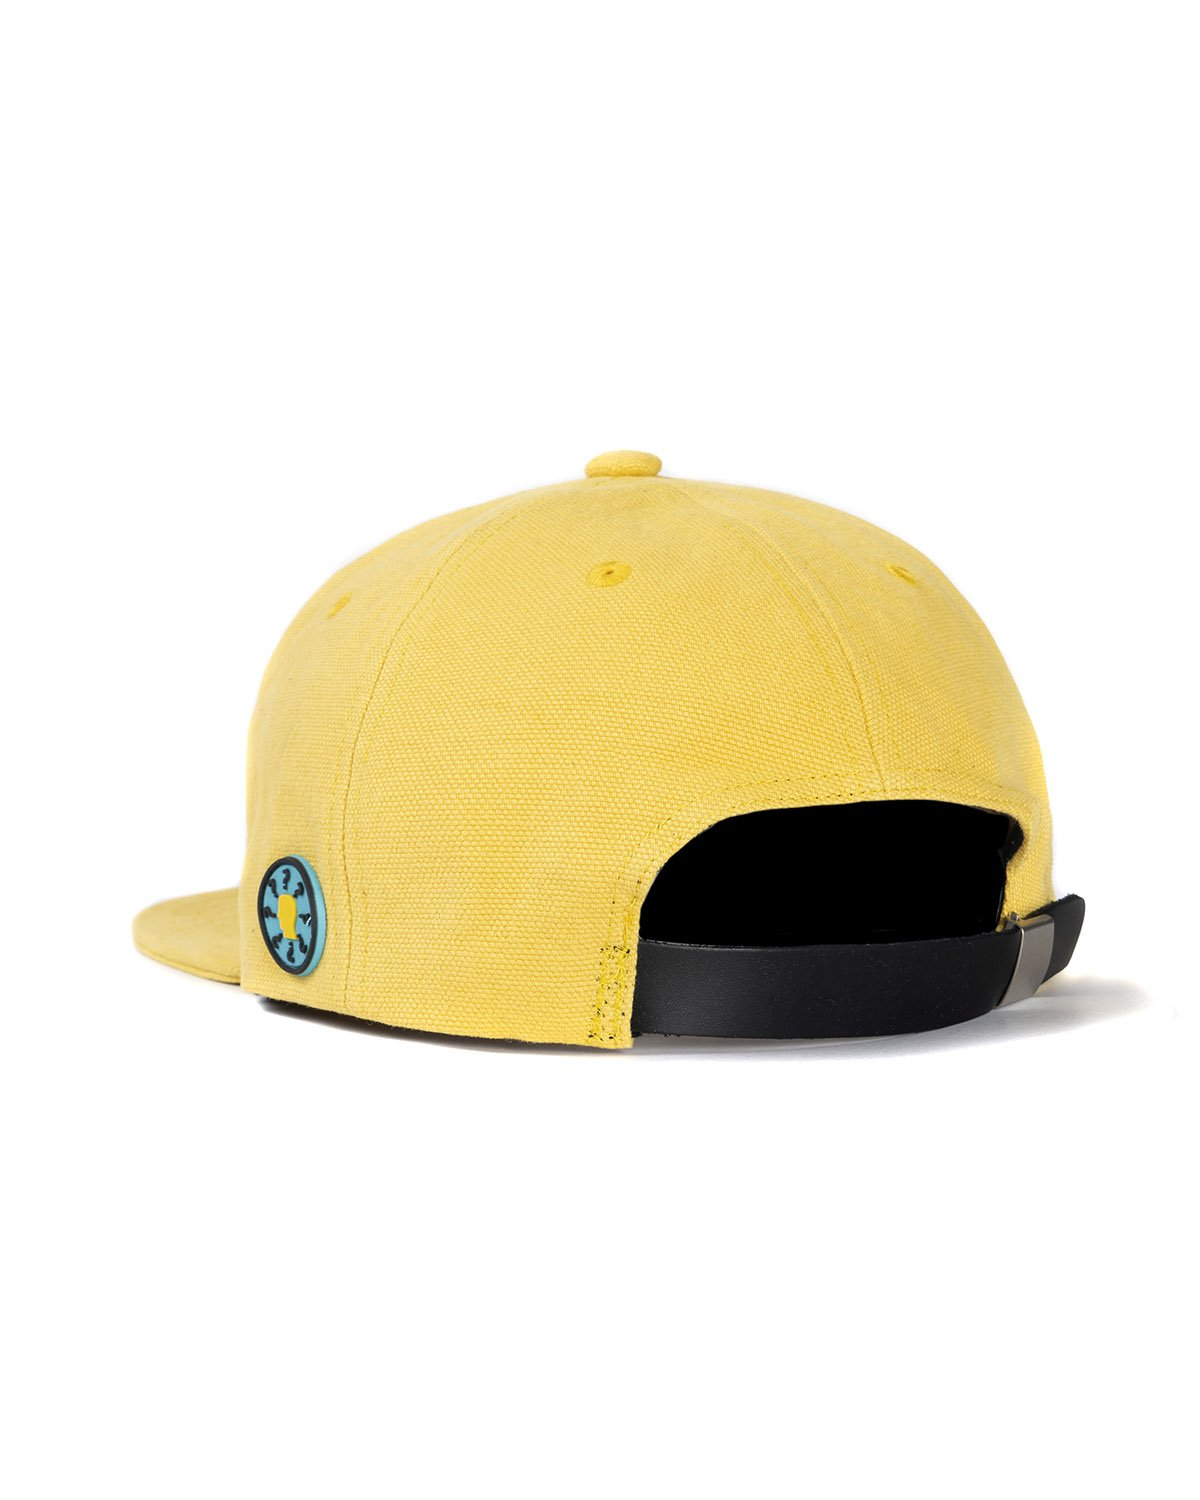 BRAINDEAD HATS BANG LOGO STRAP BACK HAT - YELLOW